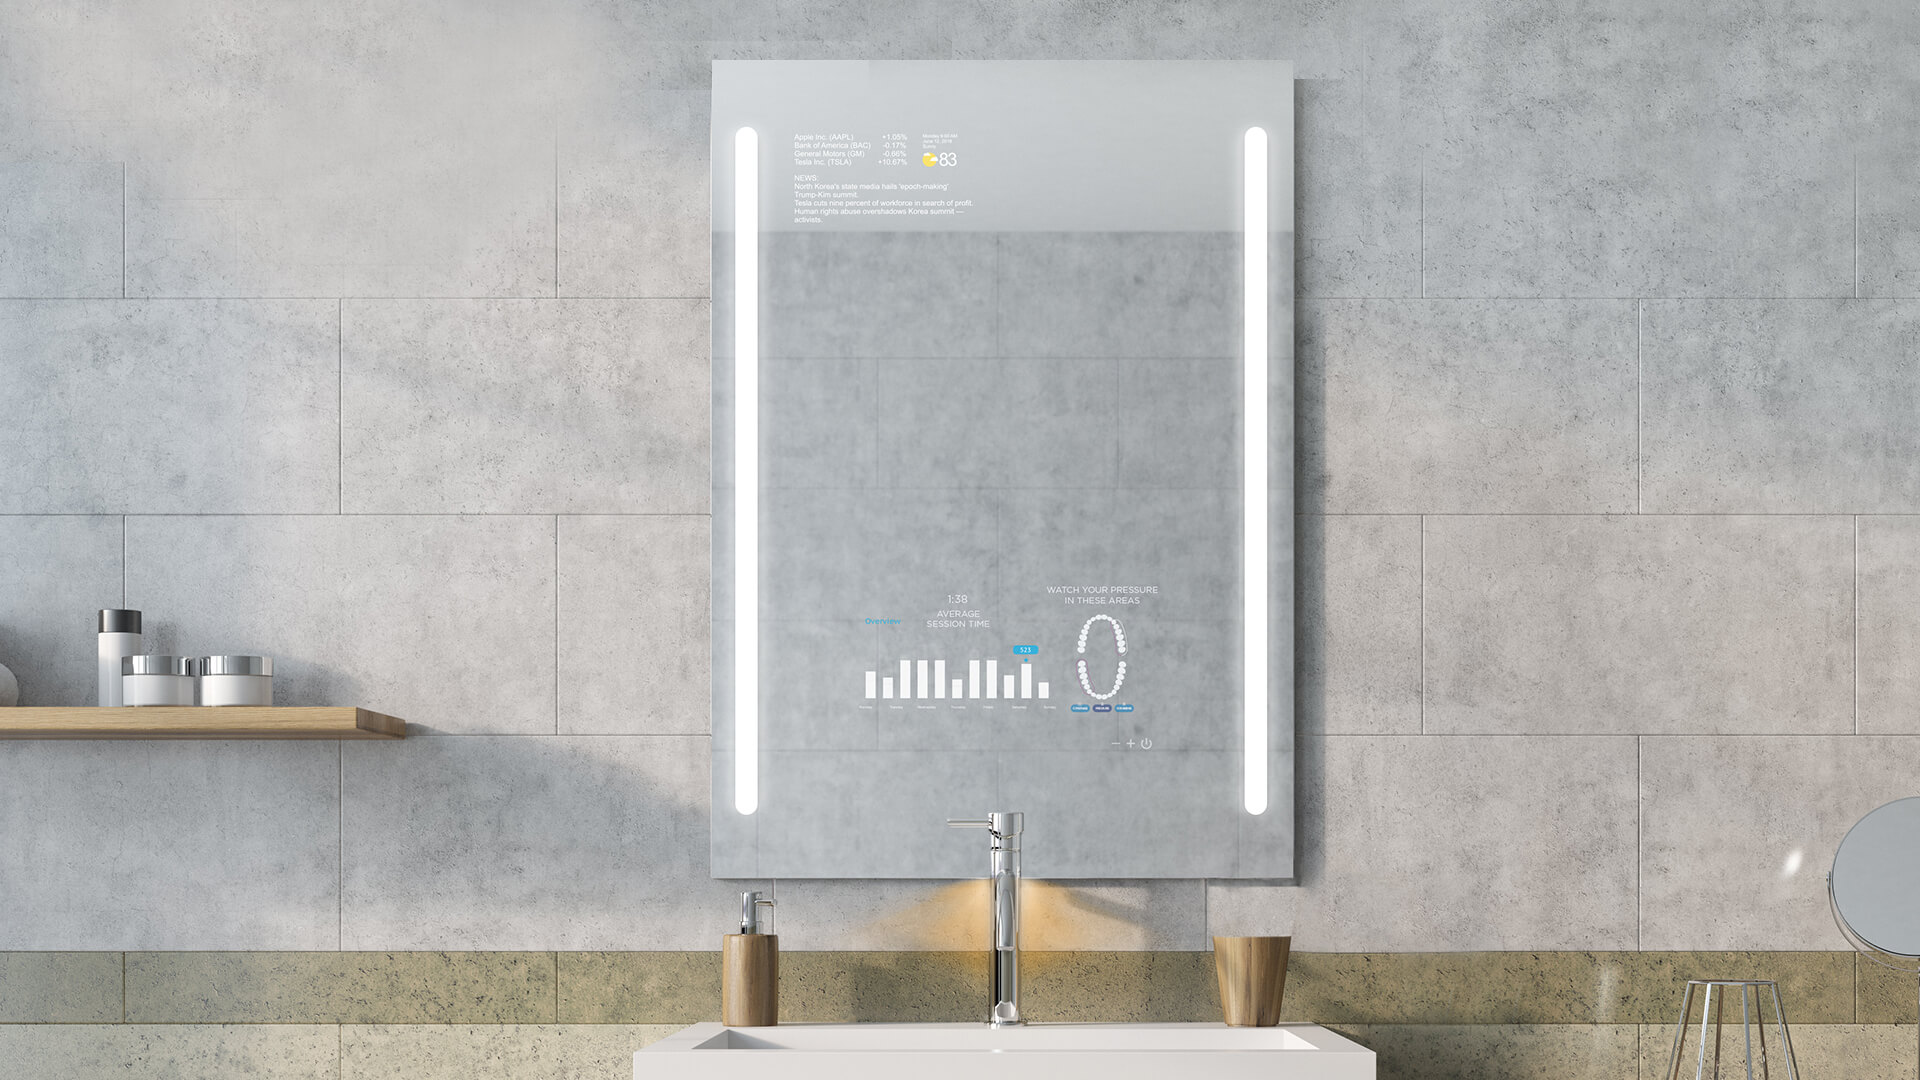 QAIO smart mirror digital toothbrush connected